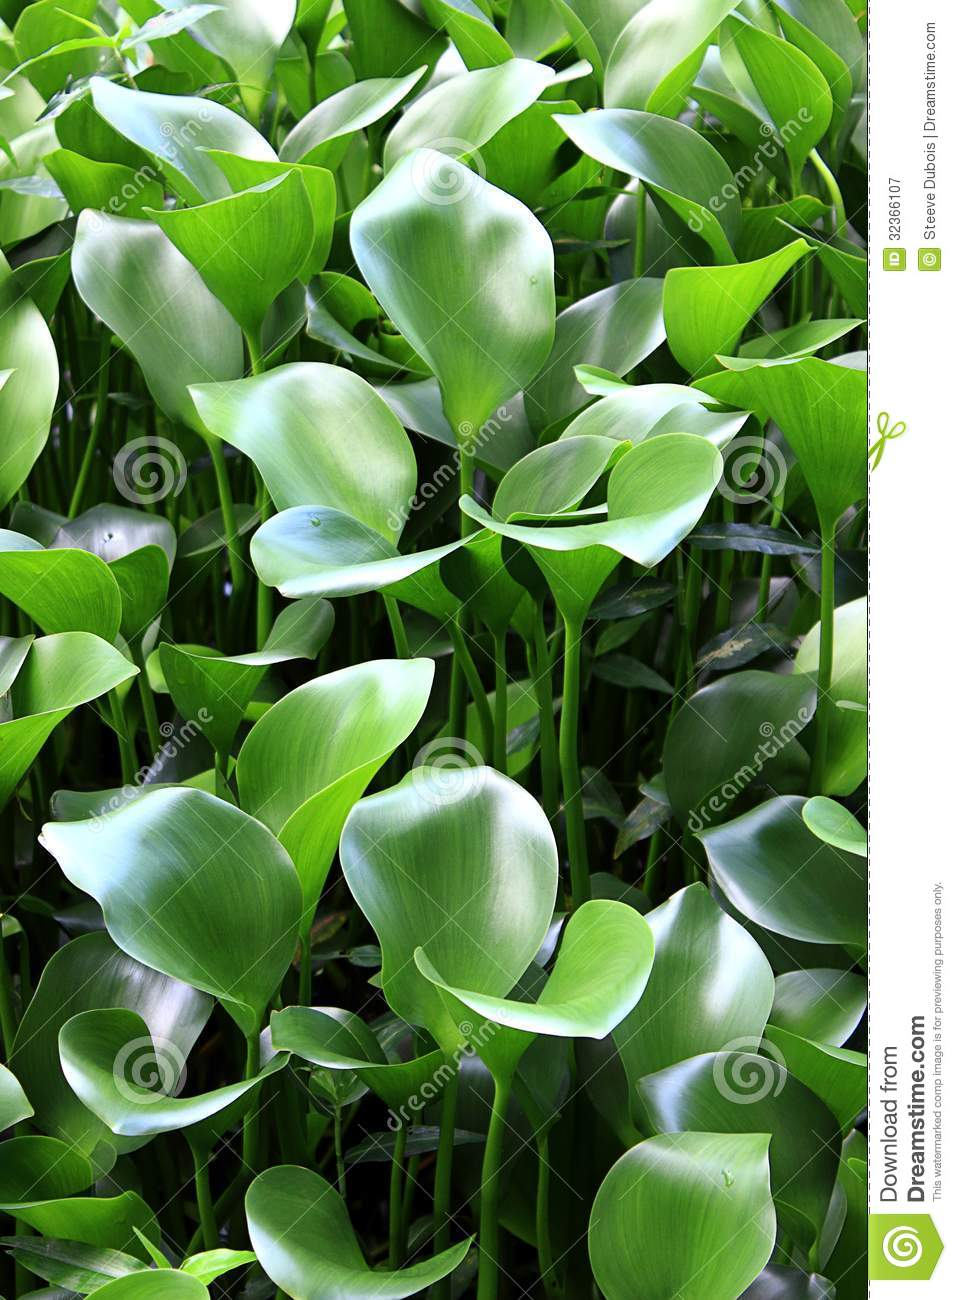 Common Water Hyacinth Plants Royalty Free Stock ...